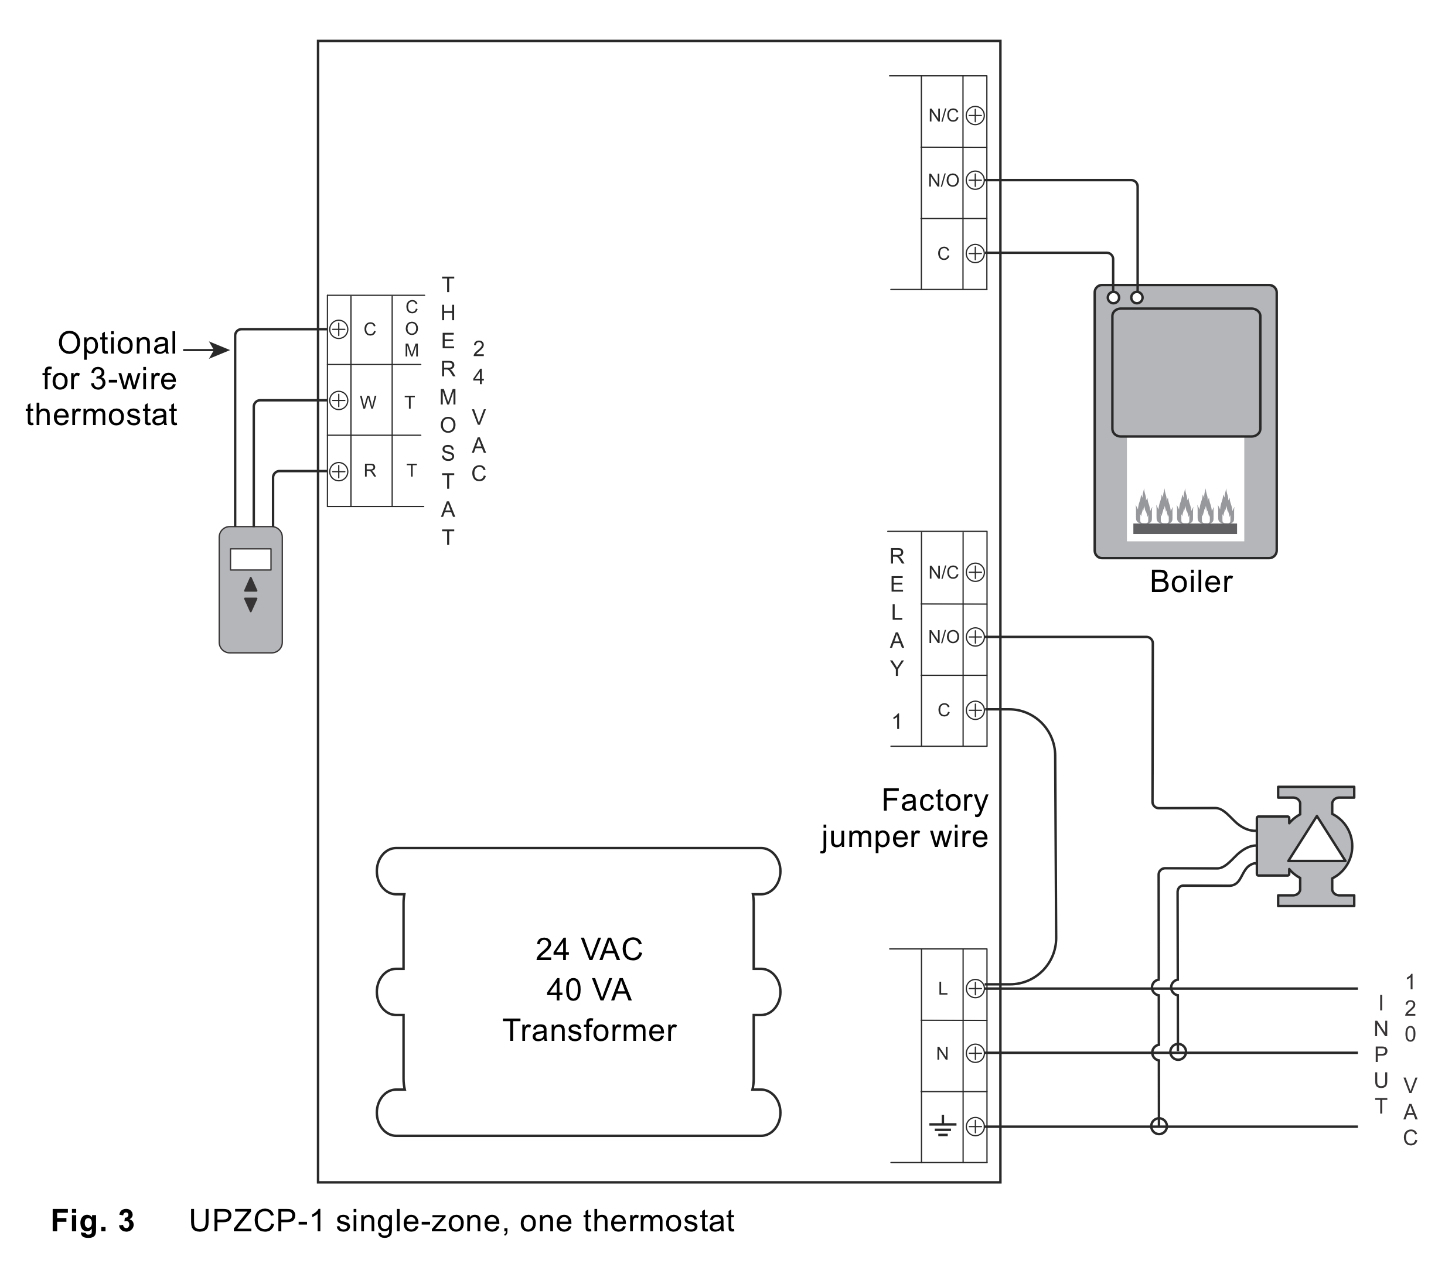 taco 007 f5 wiring diagram Collection-Taco 007 F5 Wiring Diagram Download How Can I Add Additional Circulator Relay To Existing 15-c